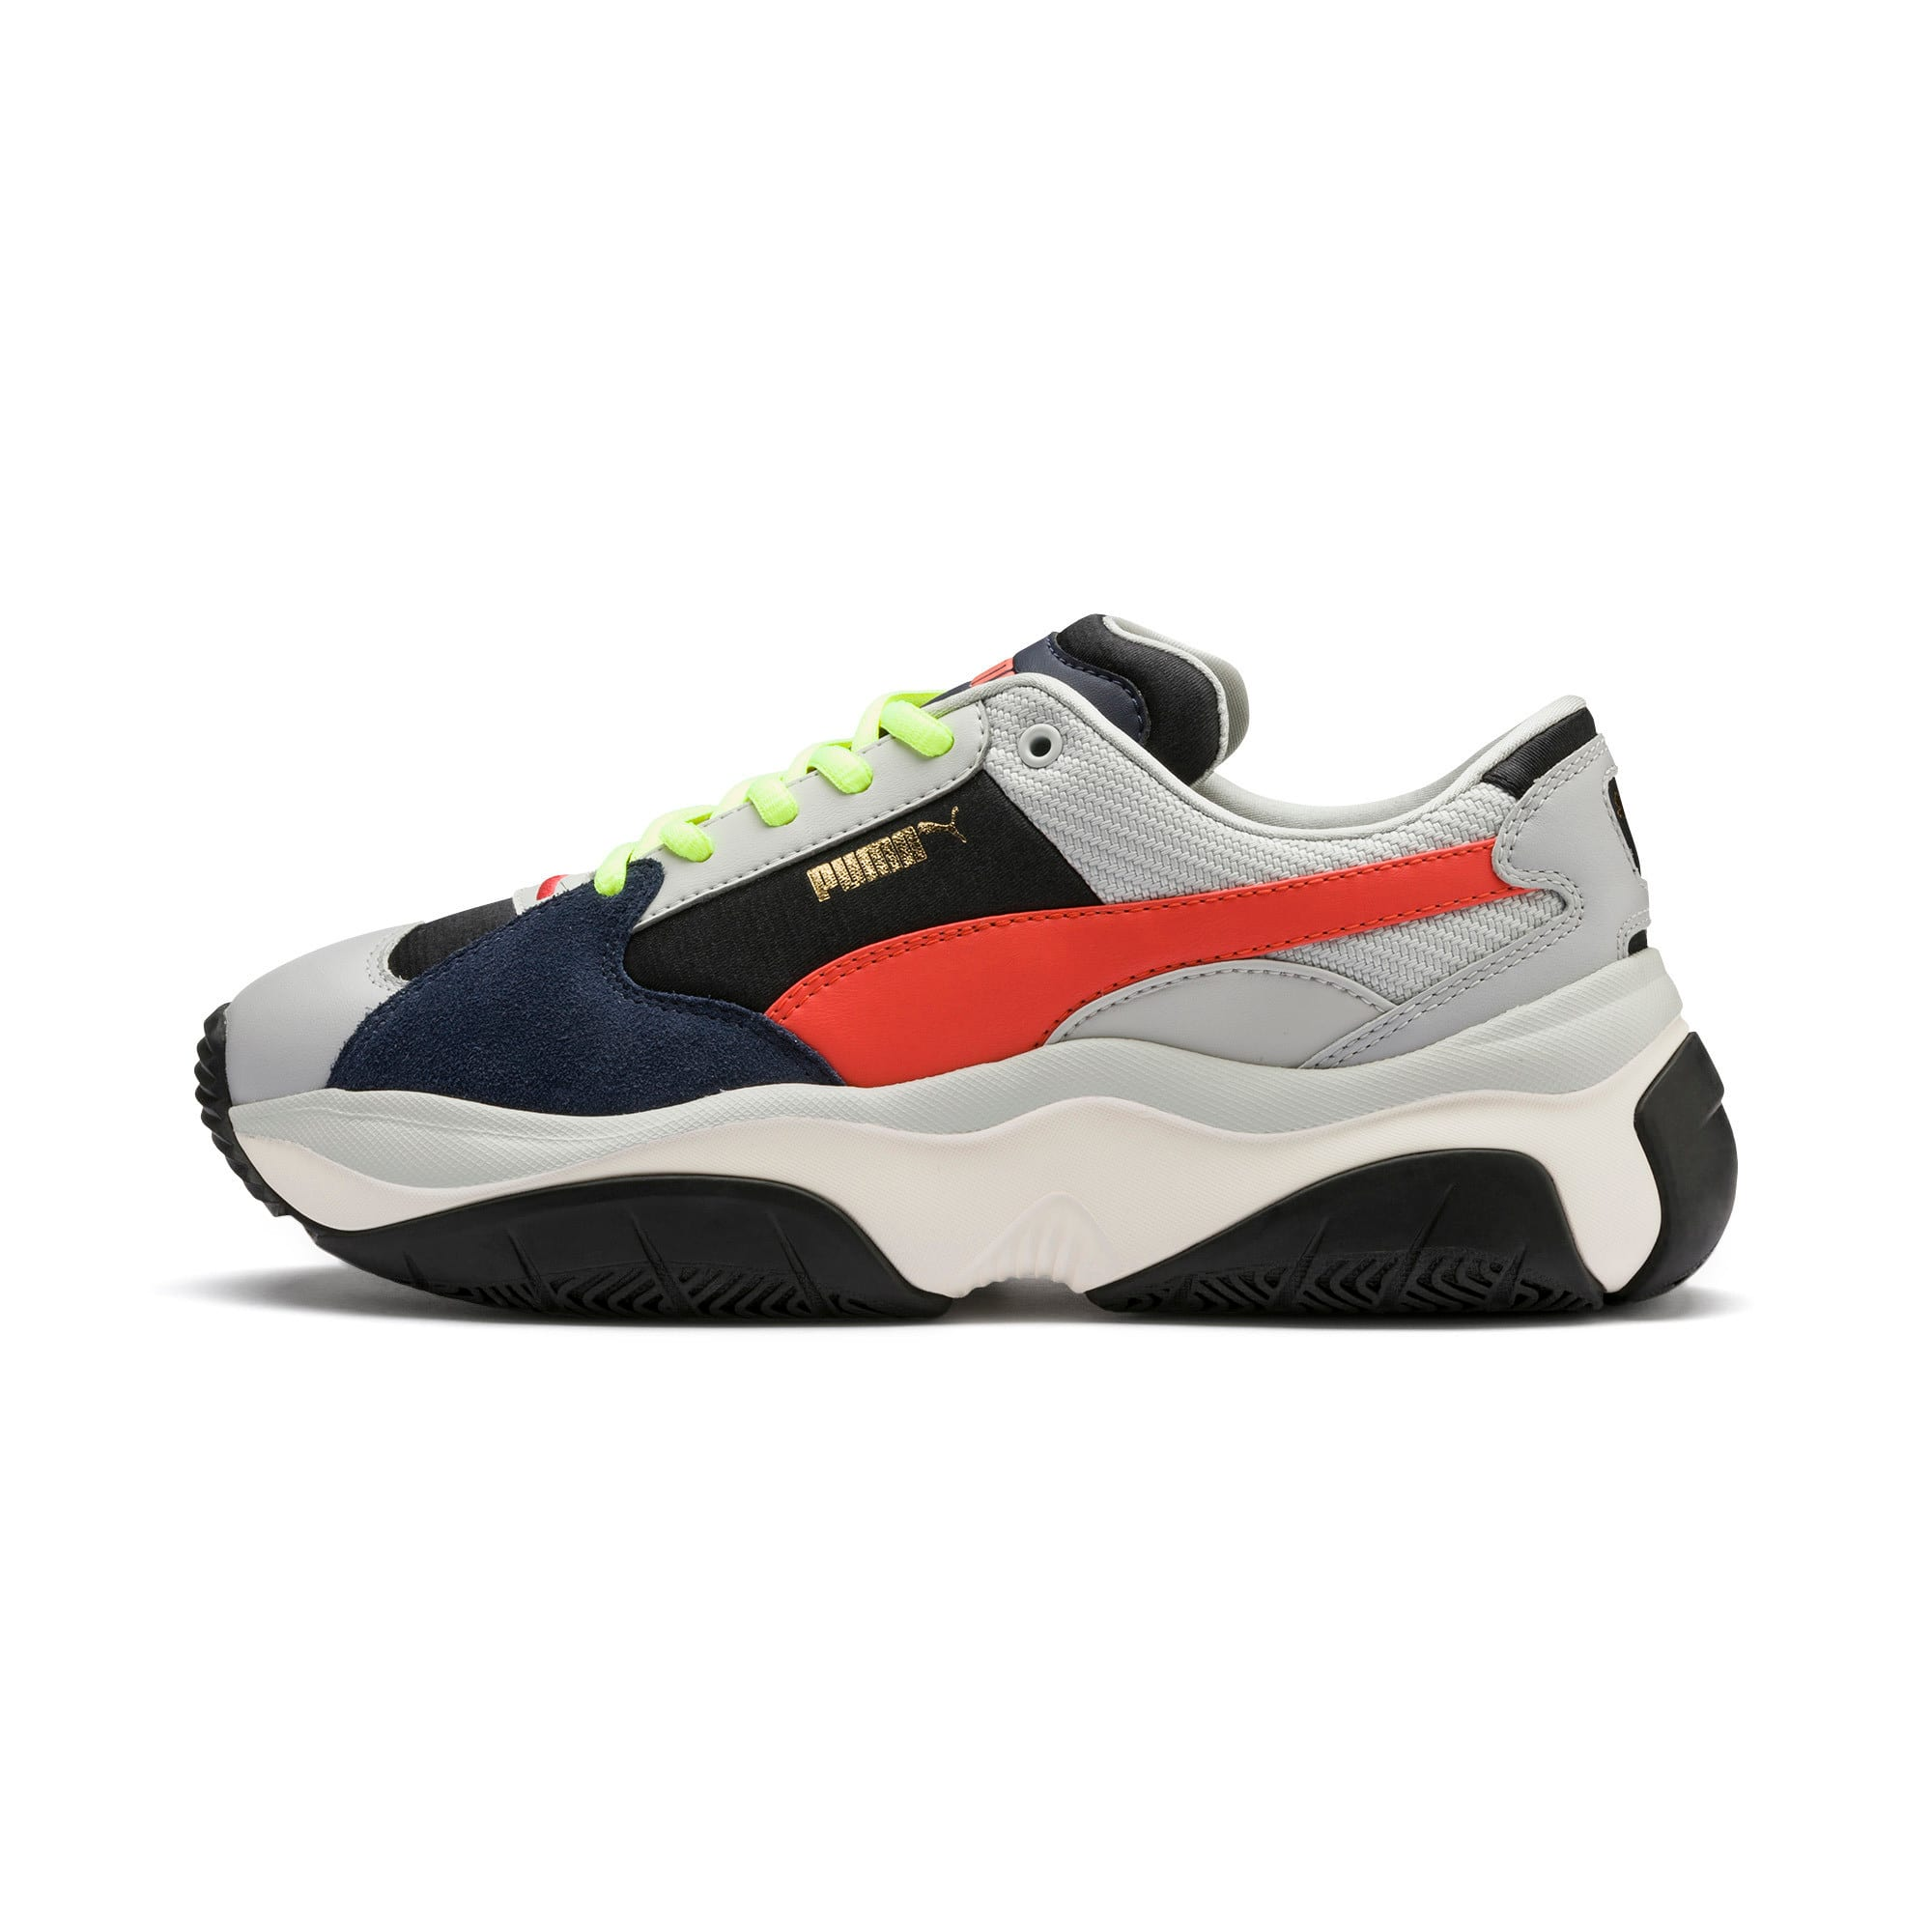 Thumbnail 1 of STORM.Y Women's Trainers, Gray Violet, medium